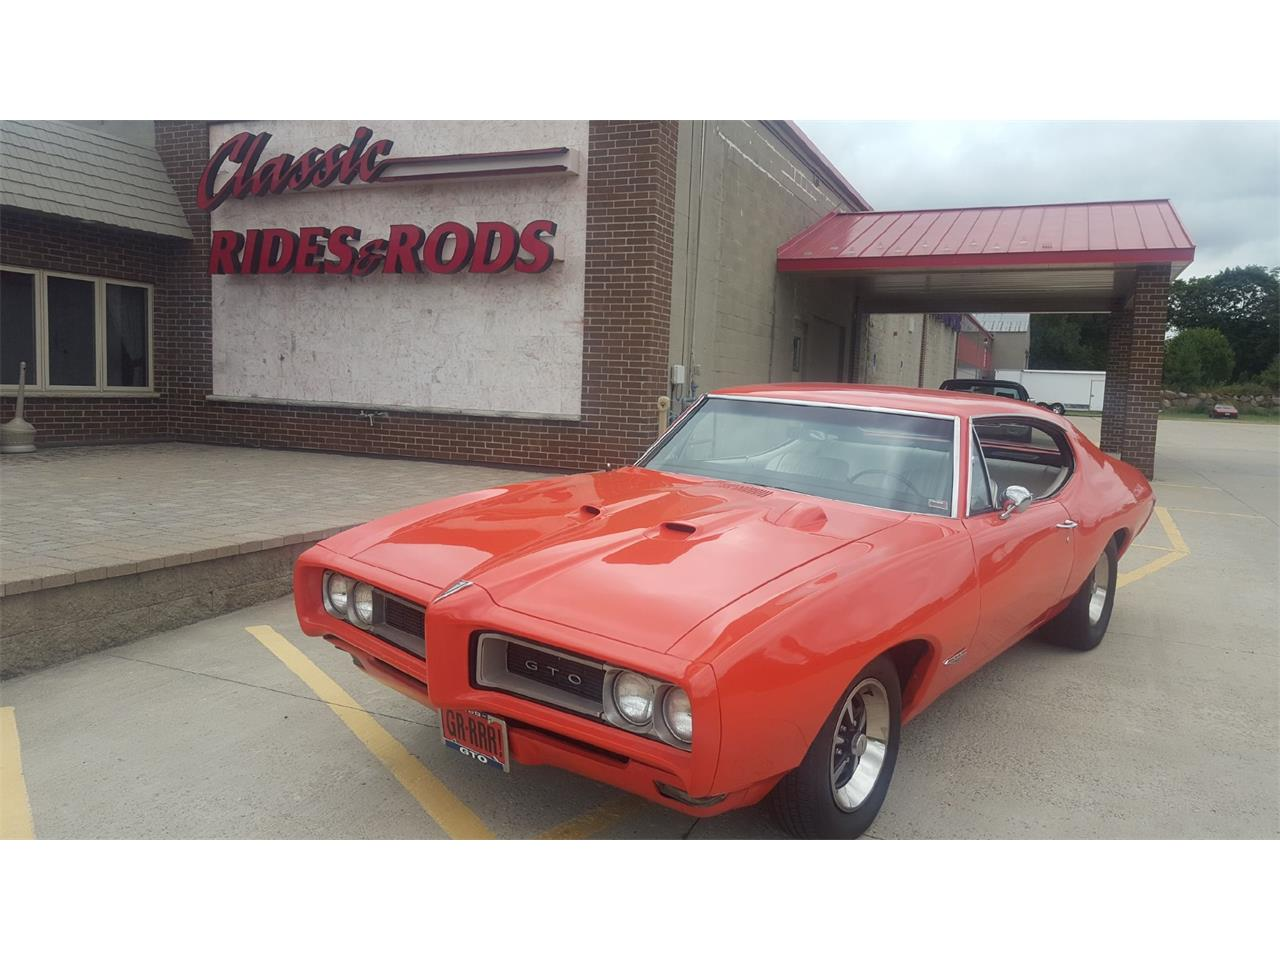 Large Picture of Classic '68 Pontiac GTO - $29,999.00 Offered by Classic Rides and Rods - LFV8